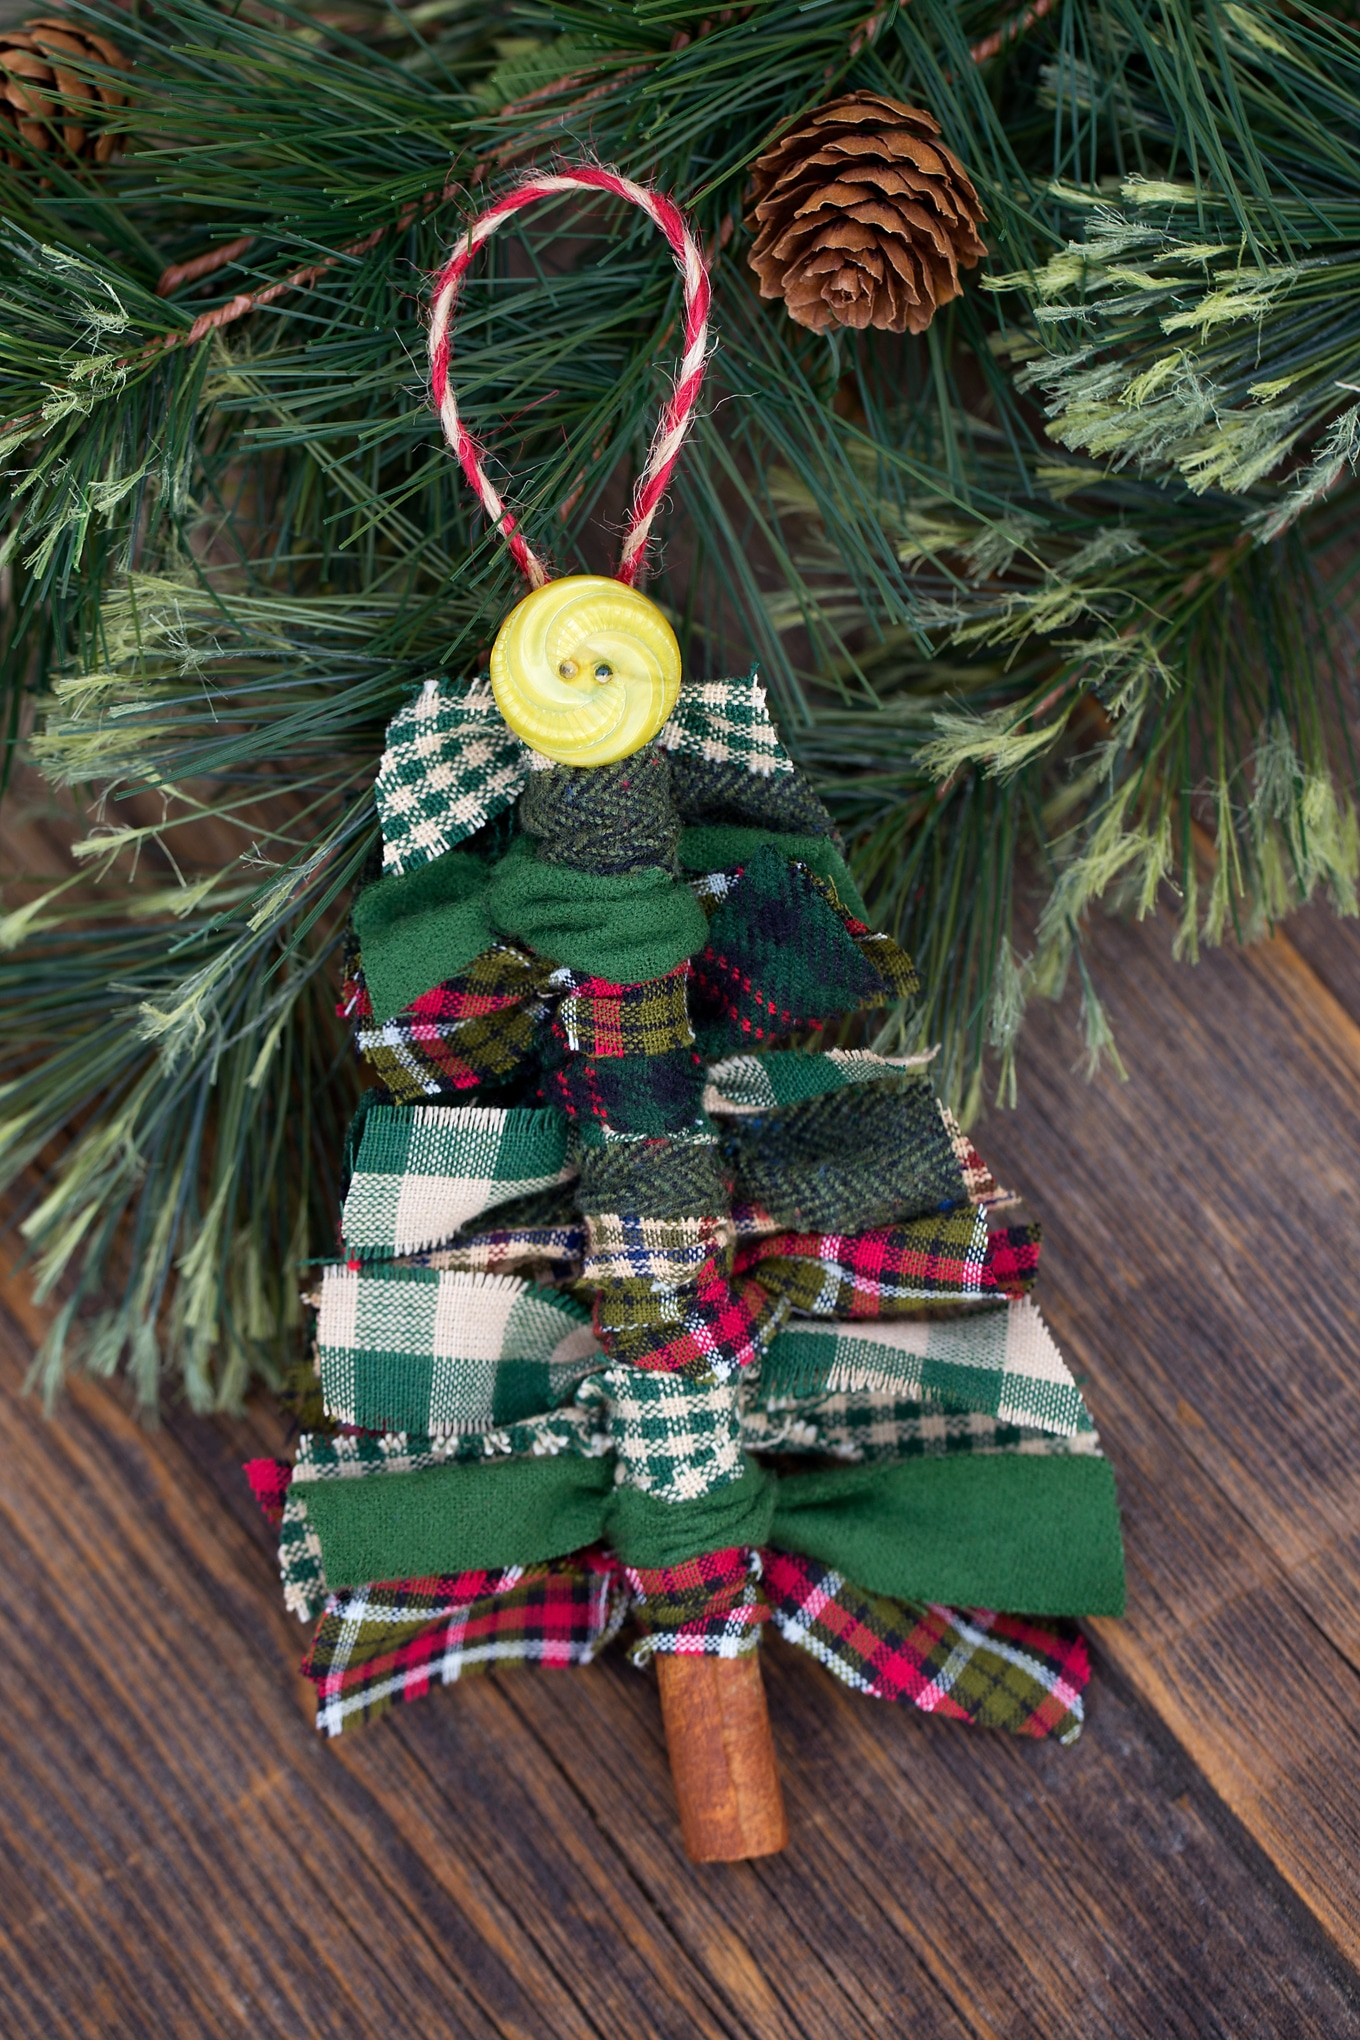 Just in time for Christmas, learn how to make Primitive Scrap Fabric Tree Ornaments from fabric remnants, cinnamon sticks, and buttons.